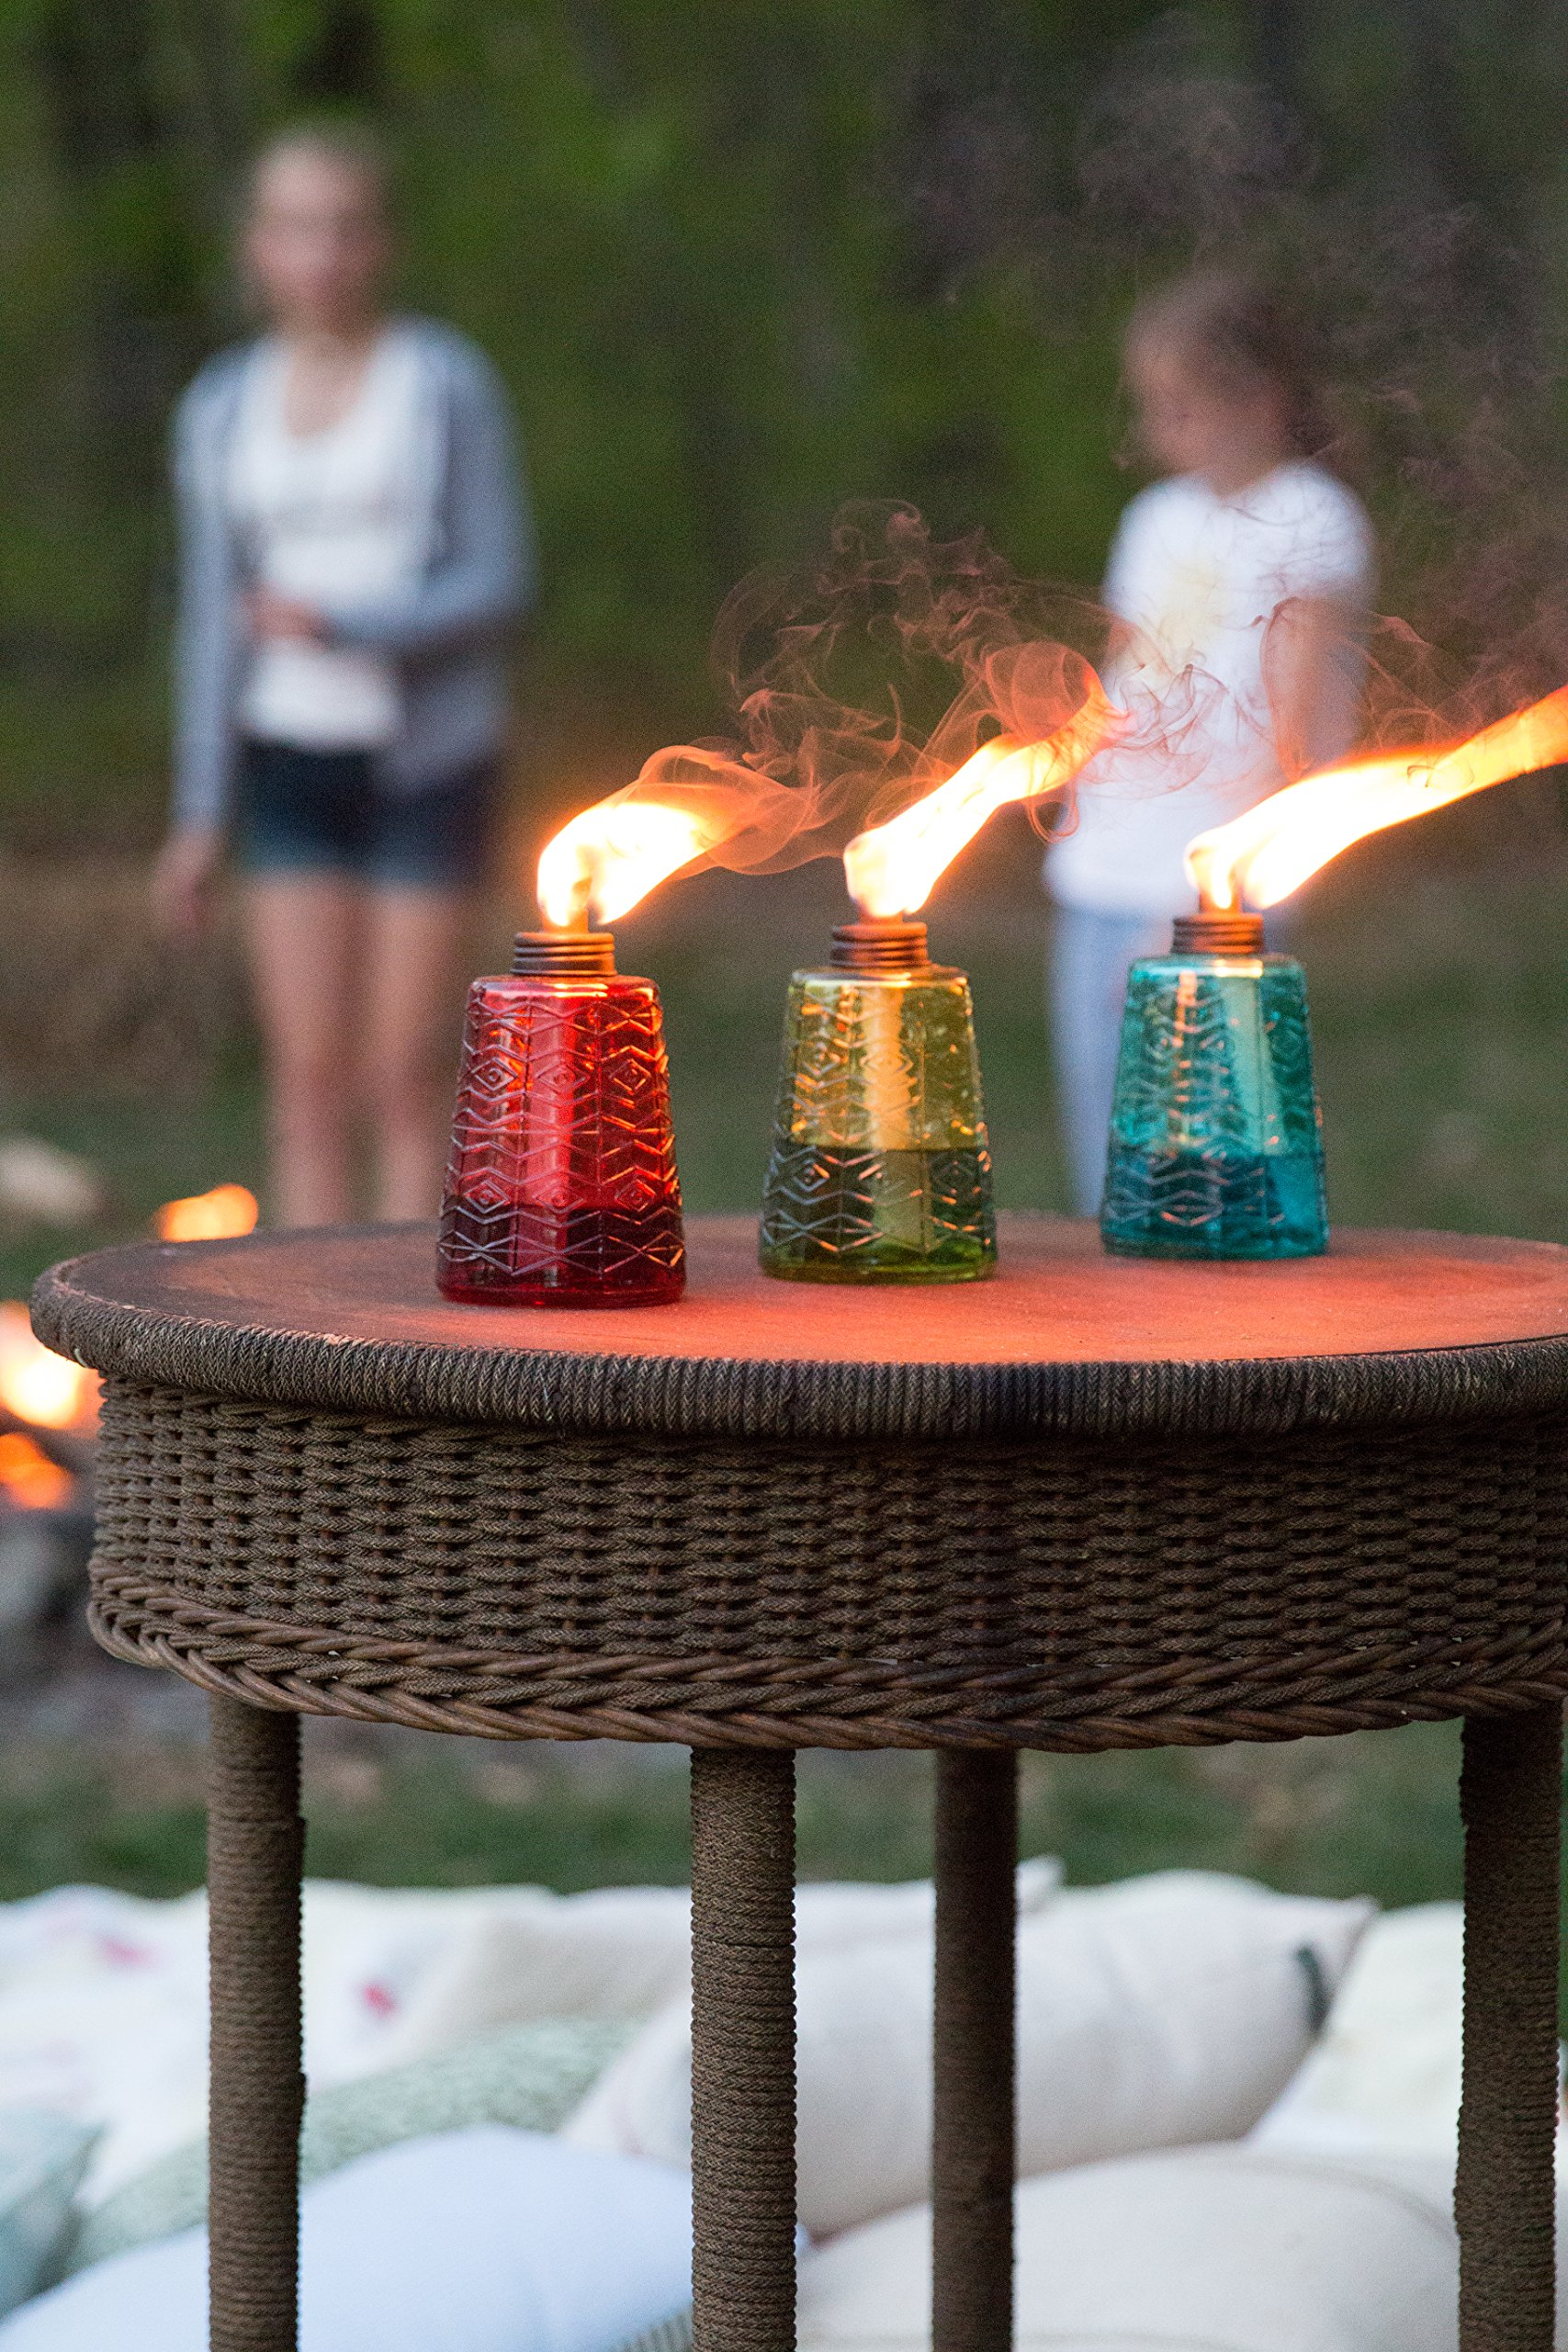 TIKI 6-Inch Molded Glass Table Torch, Red, Green & Blue (Set of 3) by Tiki (Image #4)